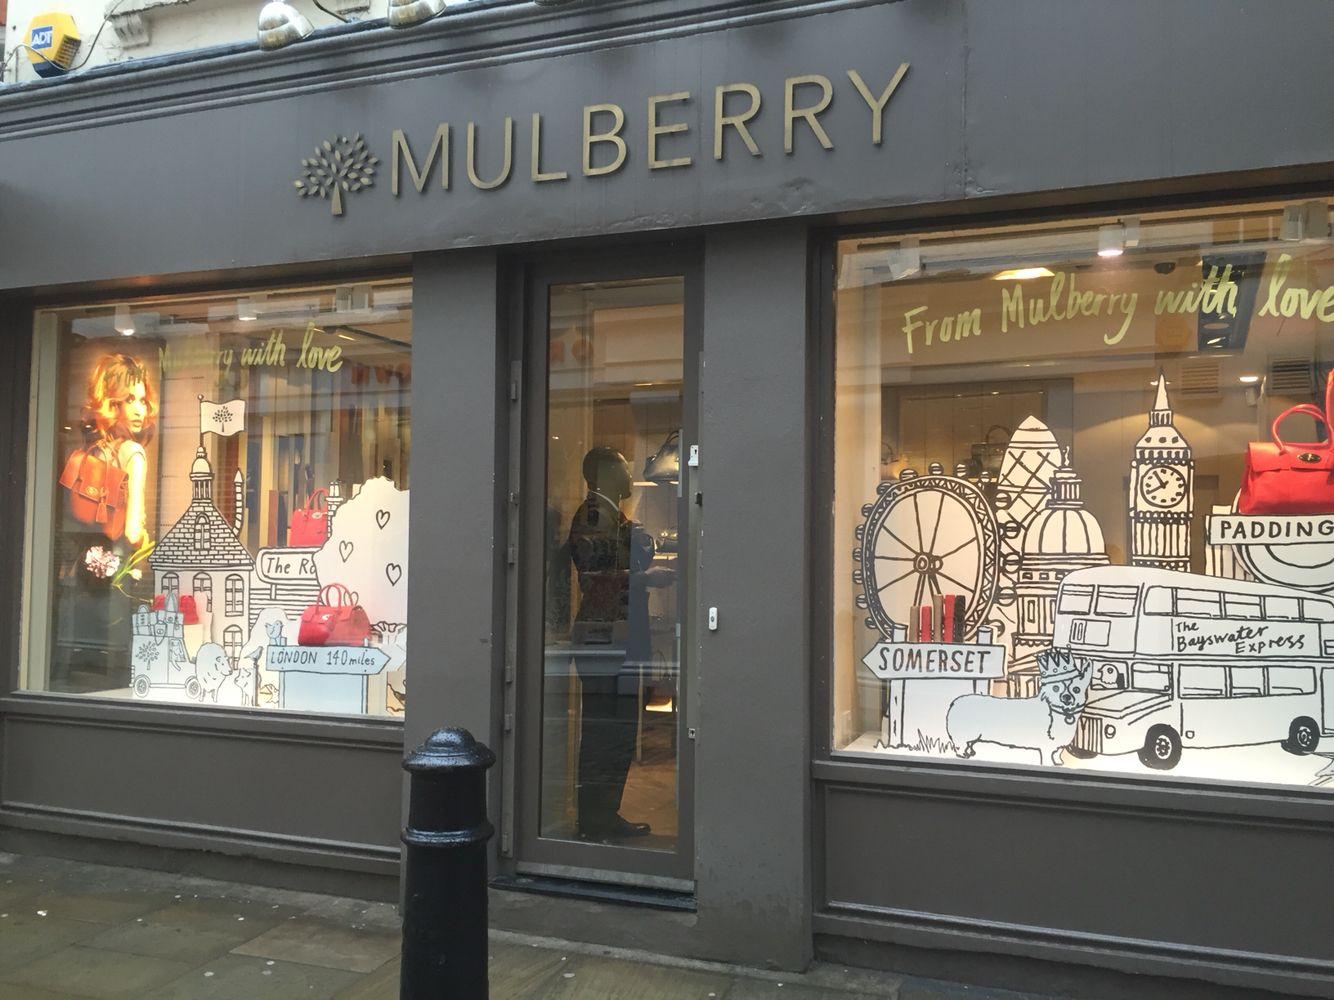 8423494b702 The mulberry store front in Covent Garden tells a story of a traveling  woman from London